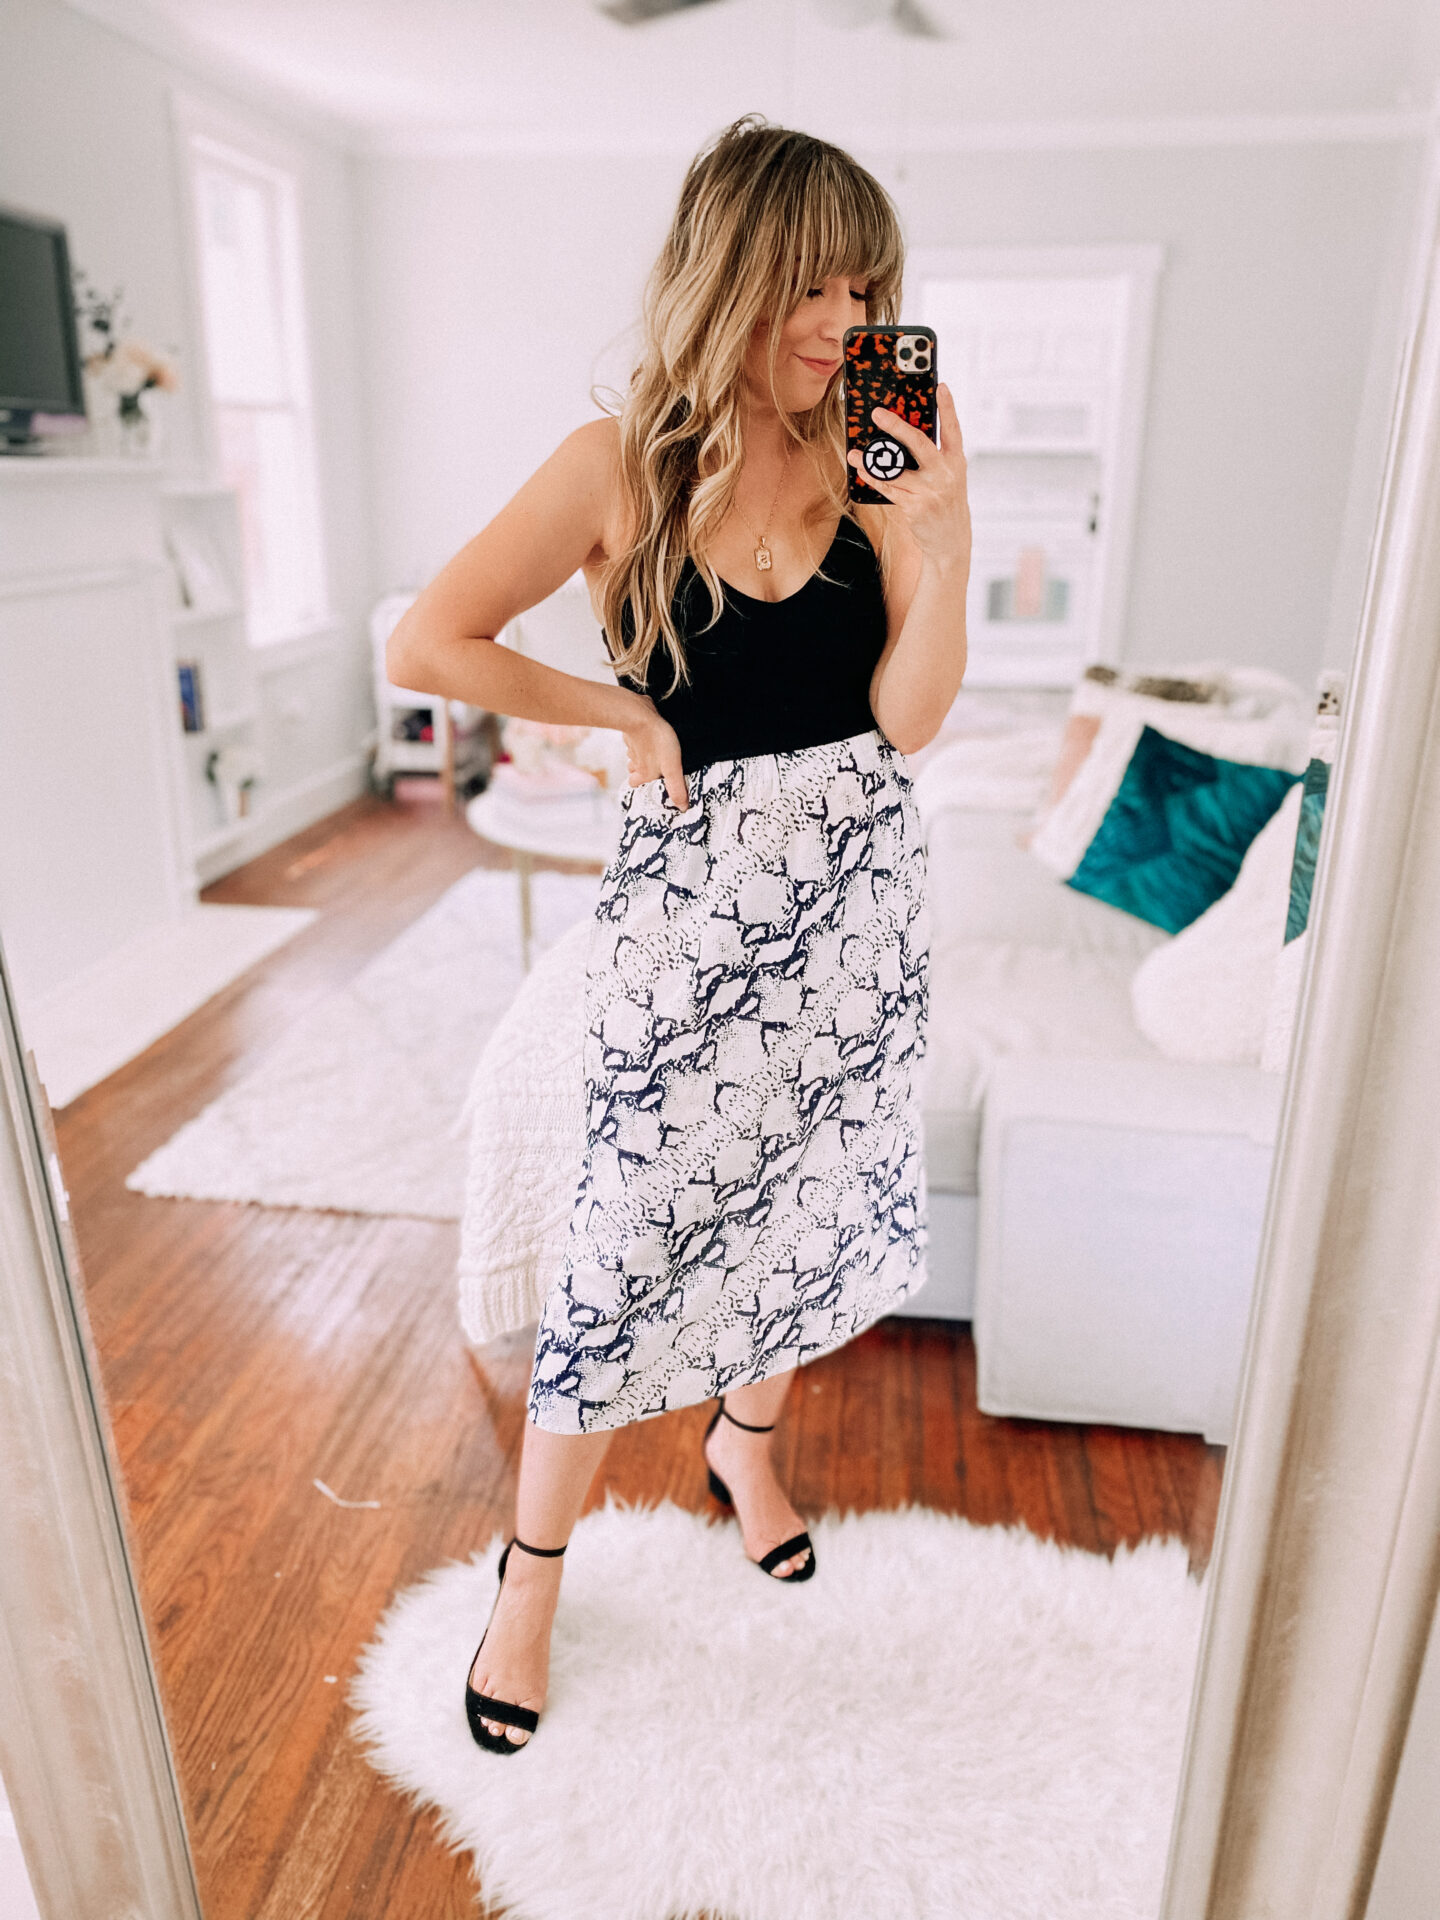 Amazon summer fashion haul - crop top and snake print midi skirt